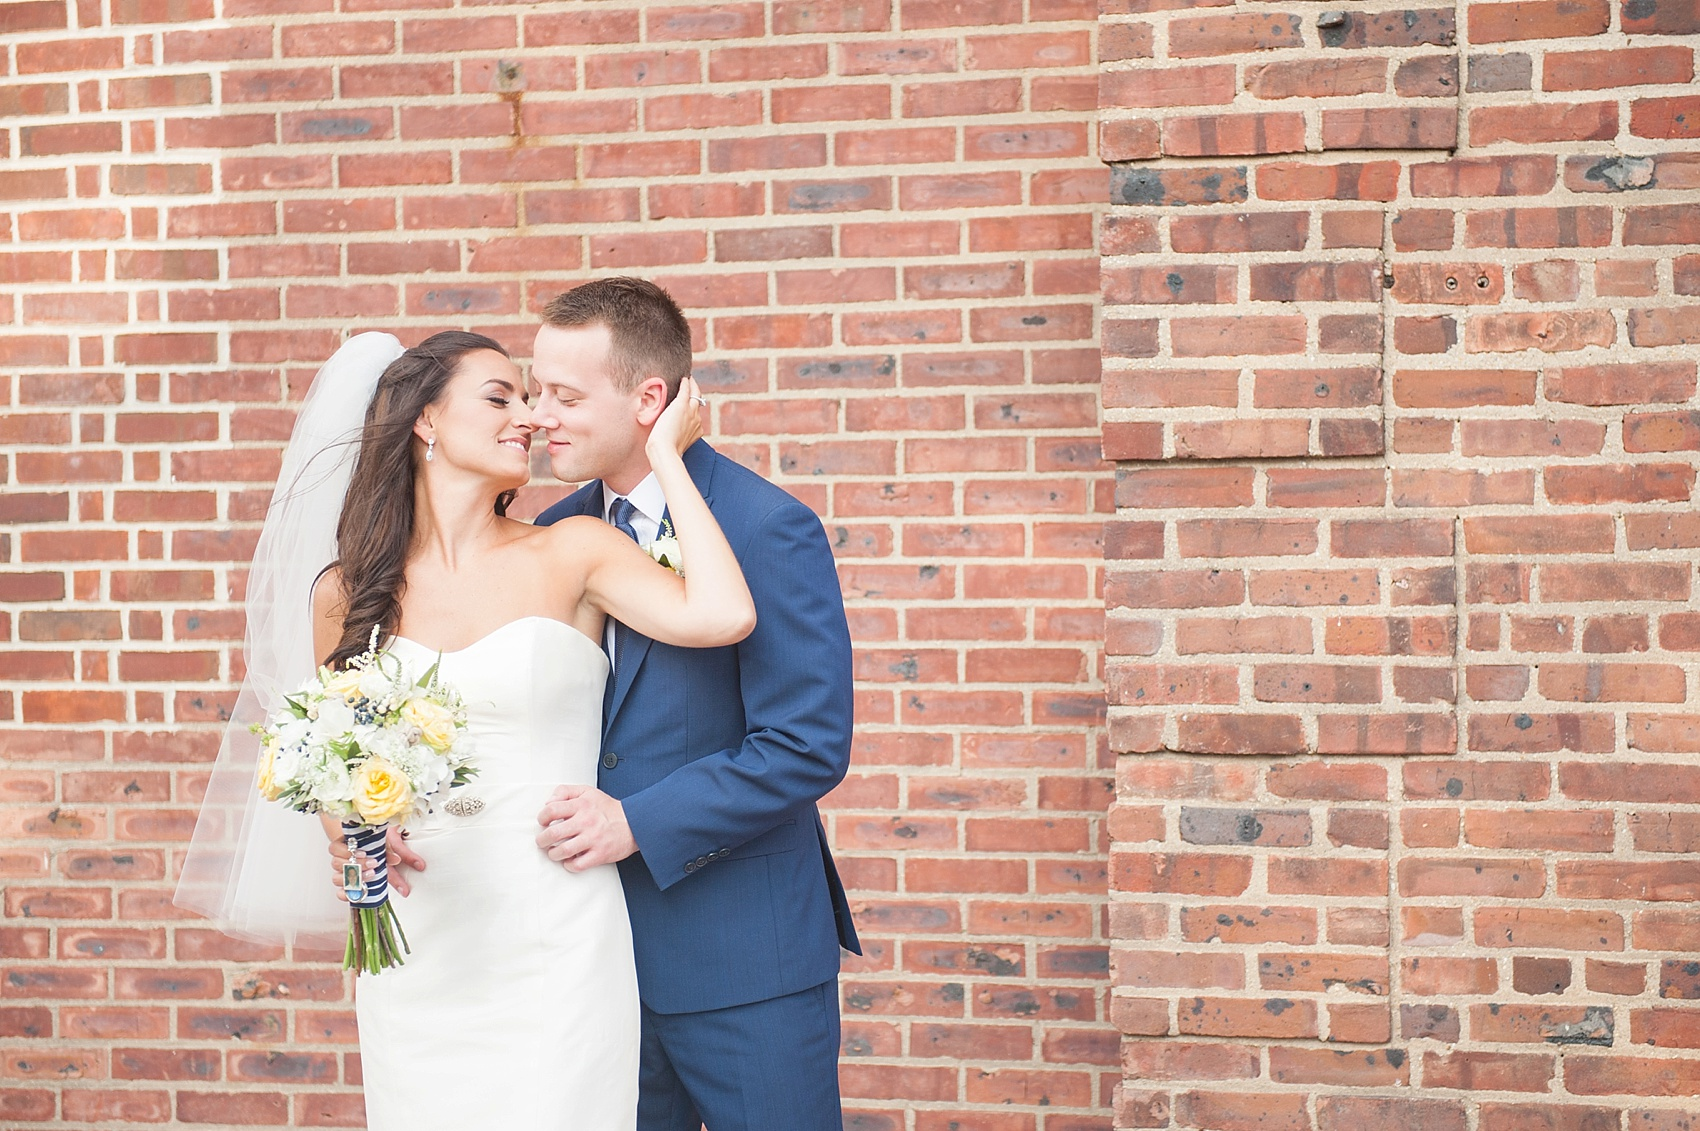 Wedding photos of the bride and groom at Molly Pitcher Inn. Photo by Mikkel Paige Photography, NJ photographer.